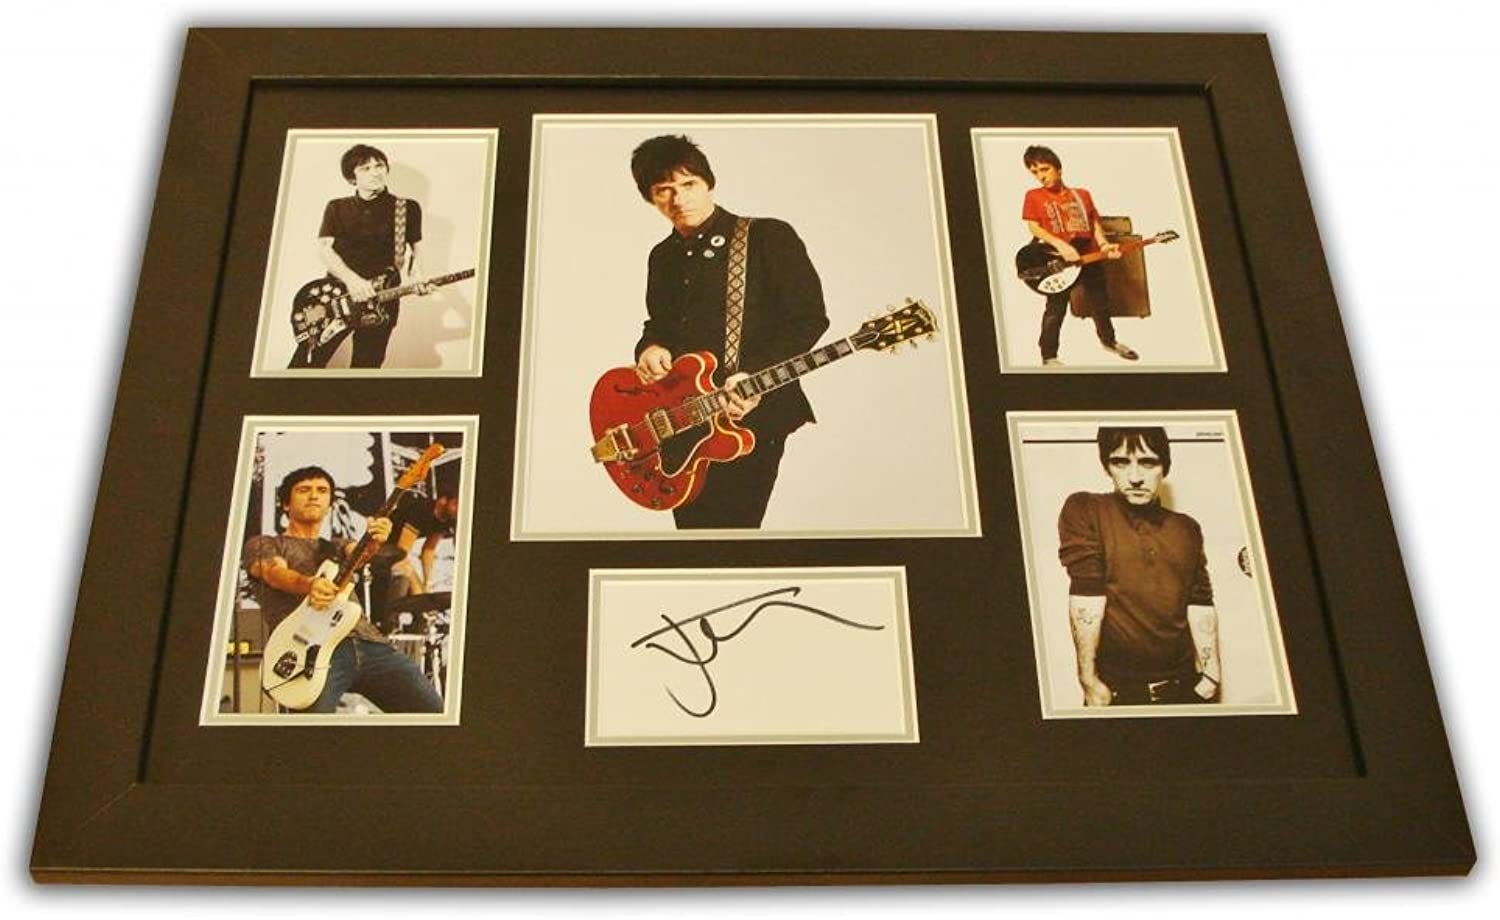 Up North Memorabilia Johnny Marr Signed Photo Large Framed The Smiths Music Autograph Display + COA